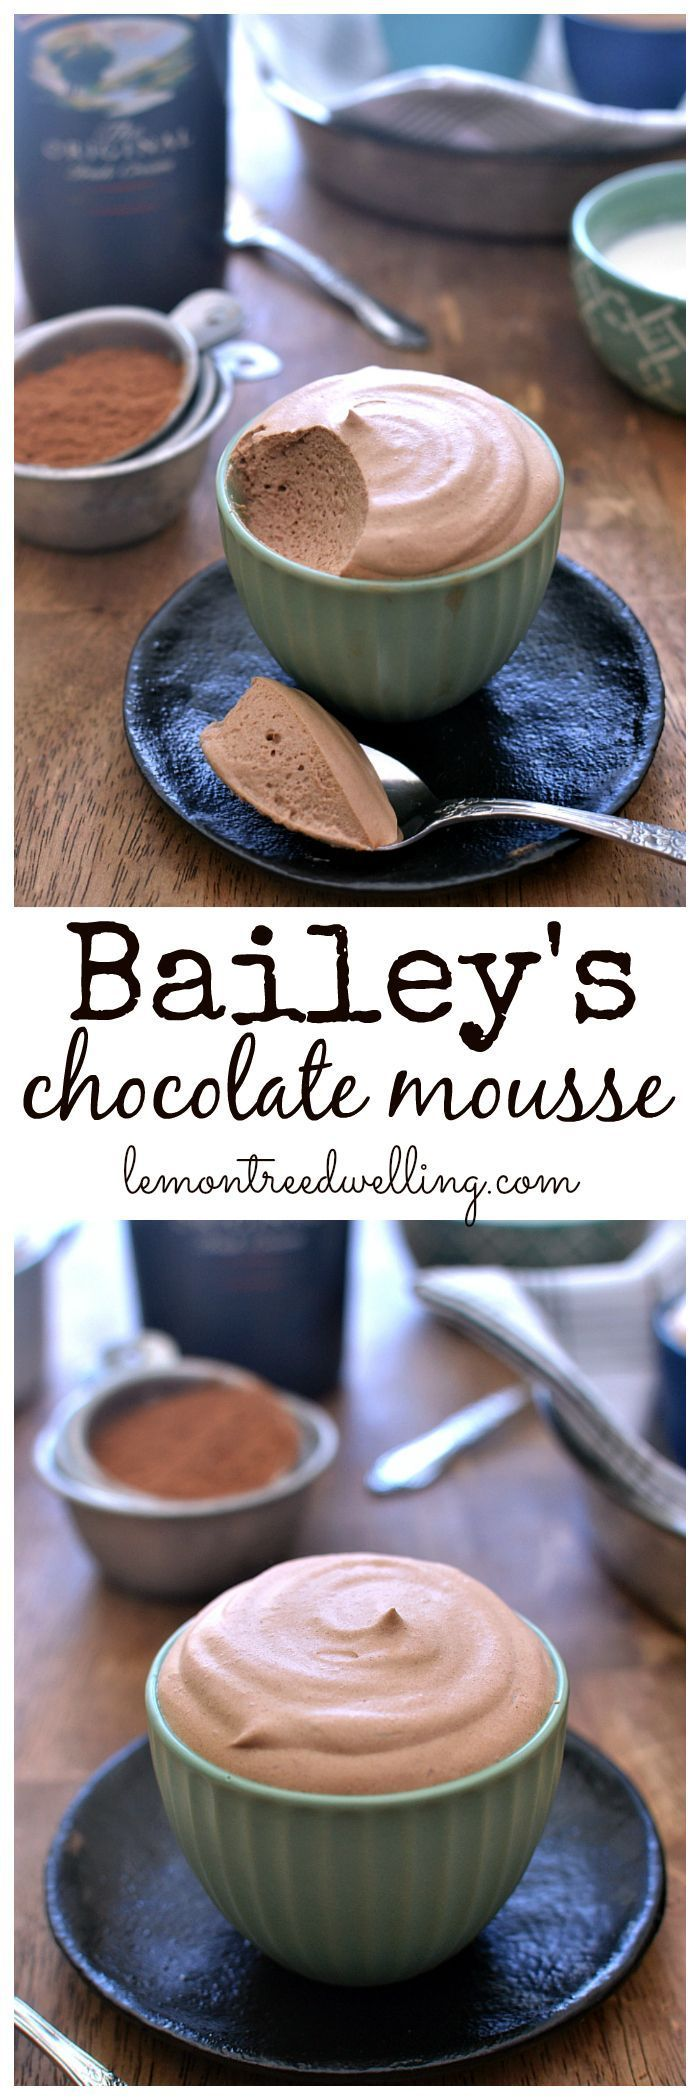 Bailey's Chocolate Mousse - light, fluffy, and completely decadent! Great Recipe!